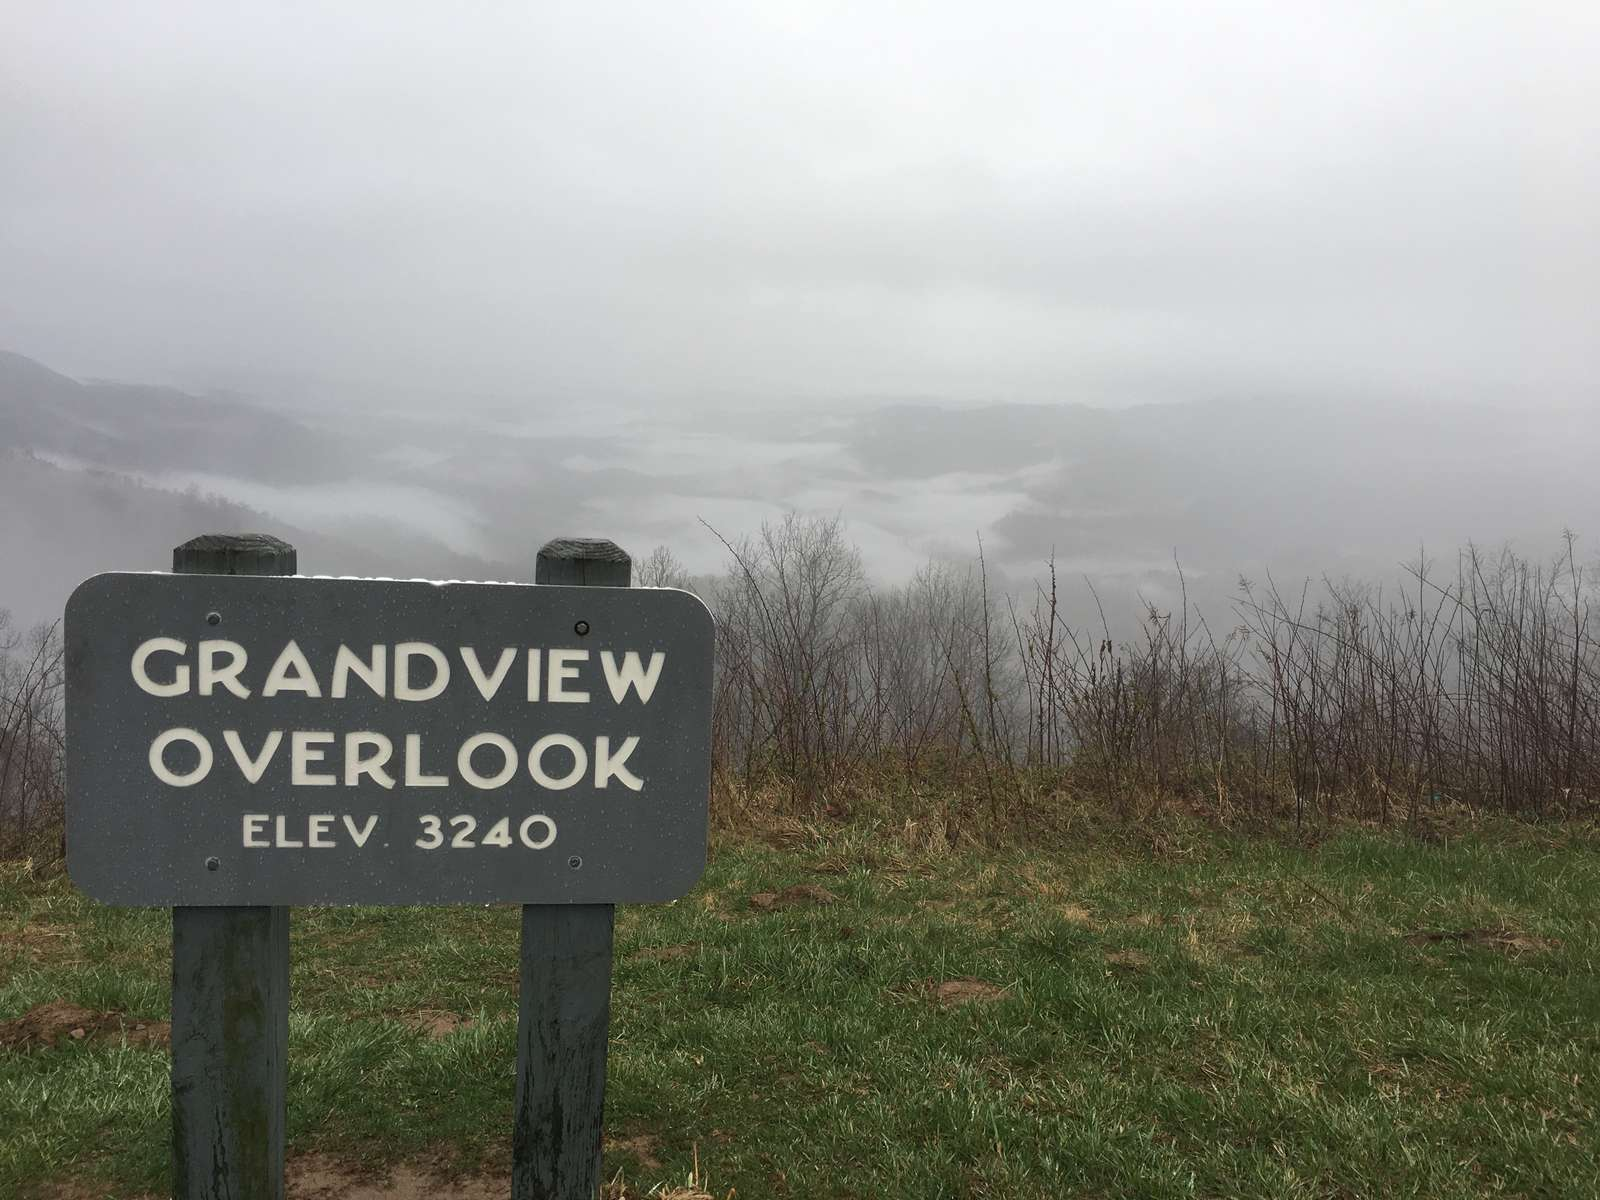 Grandview Overlook